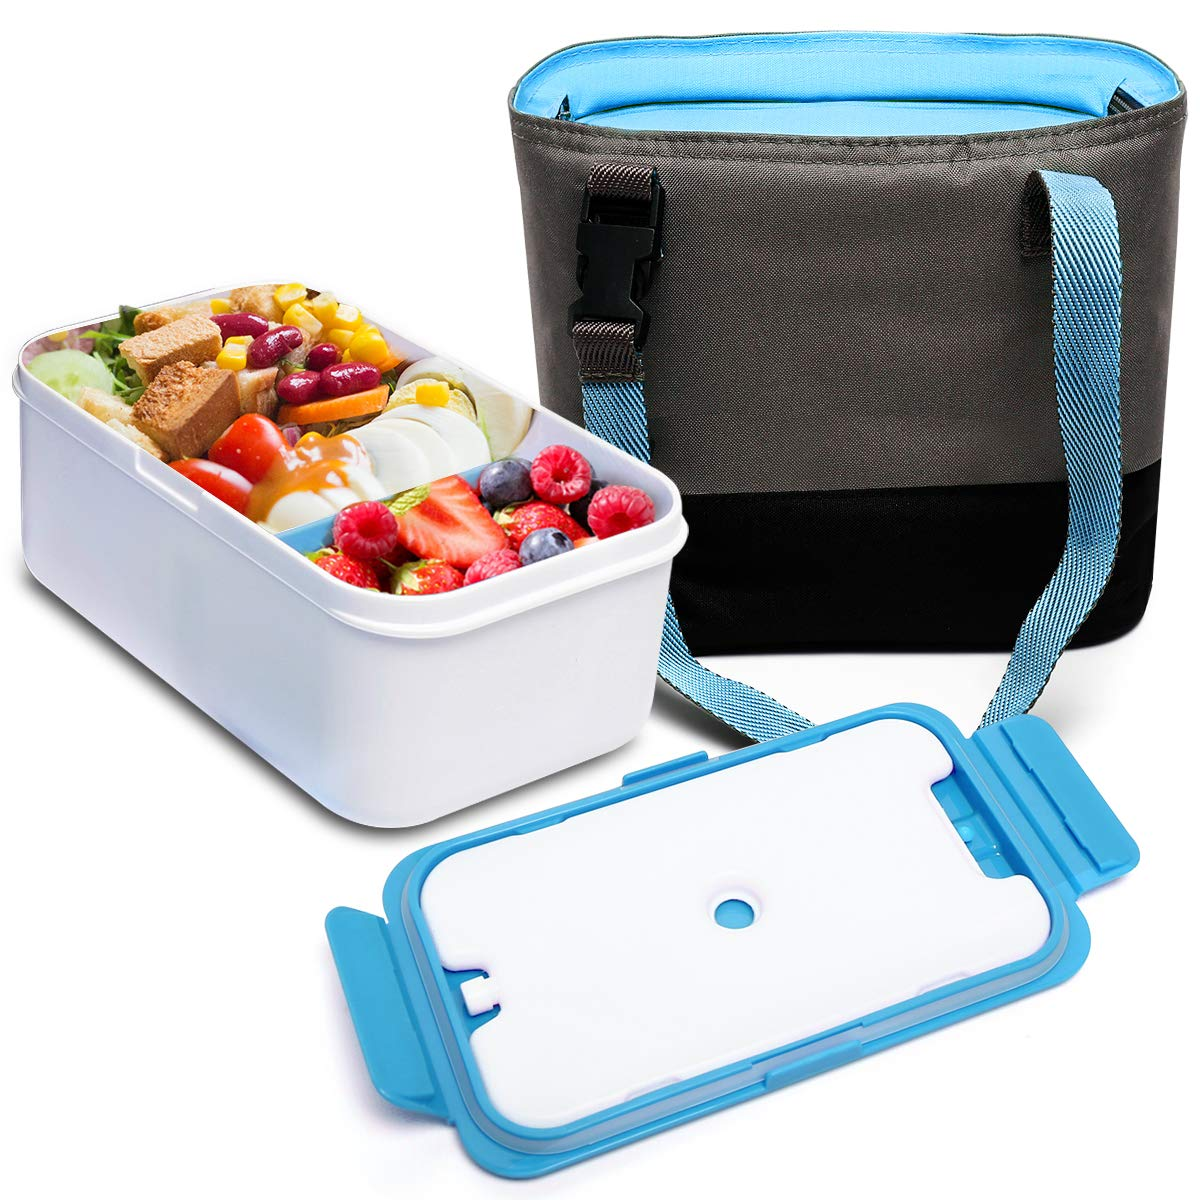 BOQUN 1400ML Bento Box Lunch Container, Reusable Divided Meal Carrier with Removable Ice Packs,BPA-Free, Microwave/Dishwasher Safe (blue)